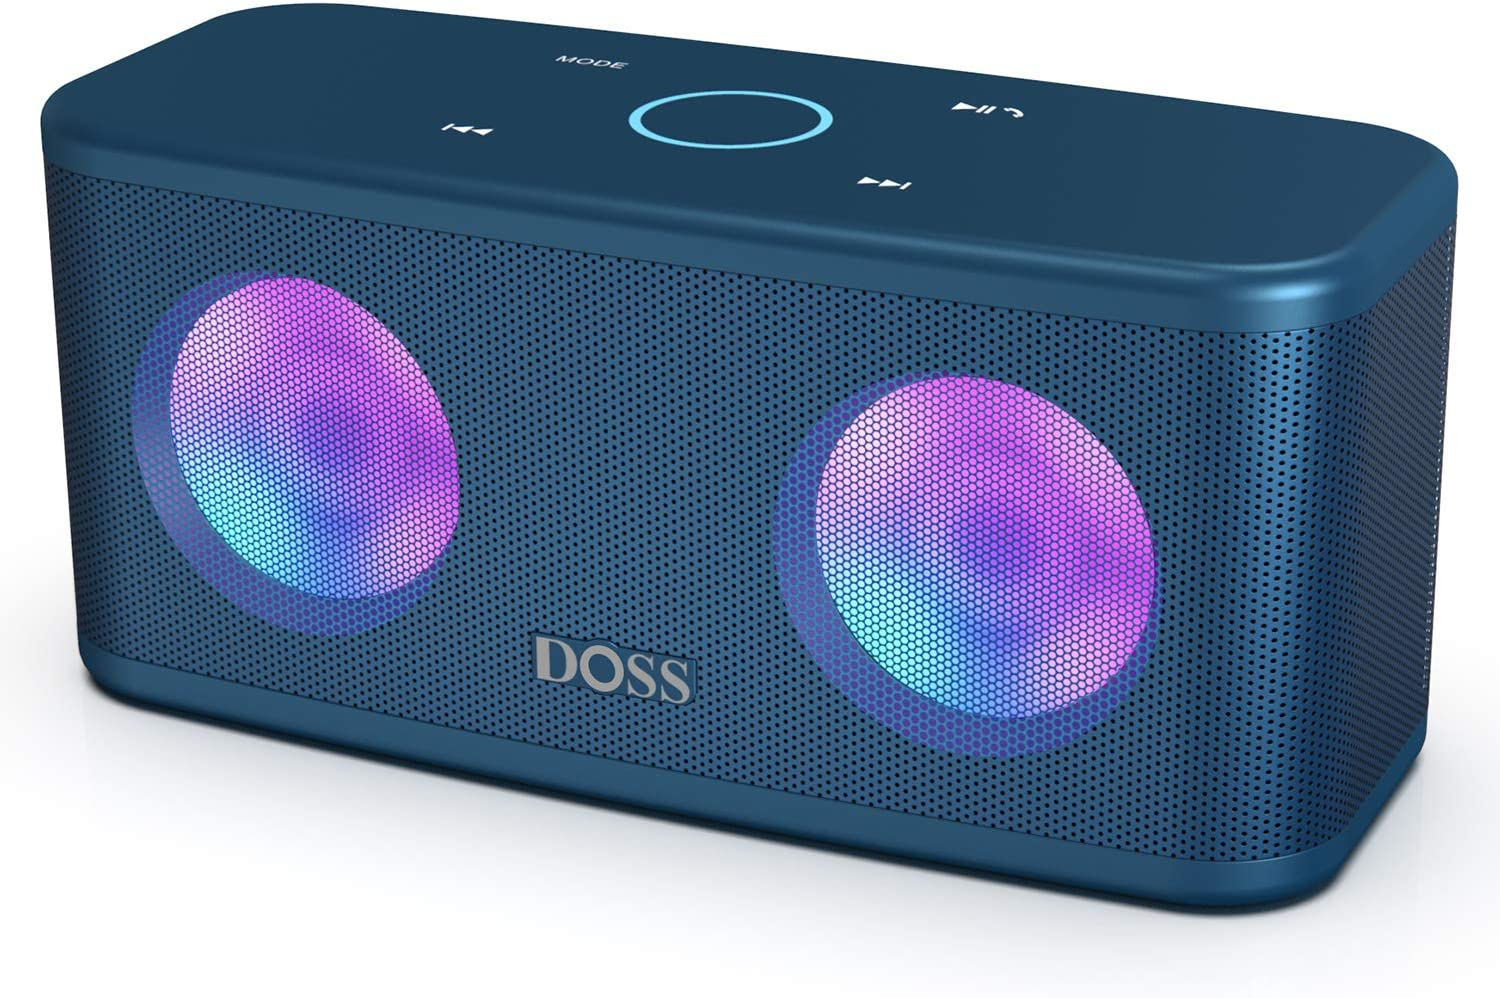 DOSS SoundBox Plus Portable Wireless Bluetooth Speaker with HD Sound and Deep Bass, Wireless Stereo Pairing, Built-in Mic, 20H Playtime, Portable Wireless Speaker for Phone, Tablet, TV, and More-Blue